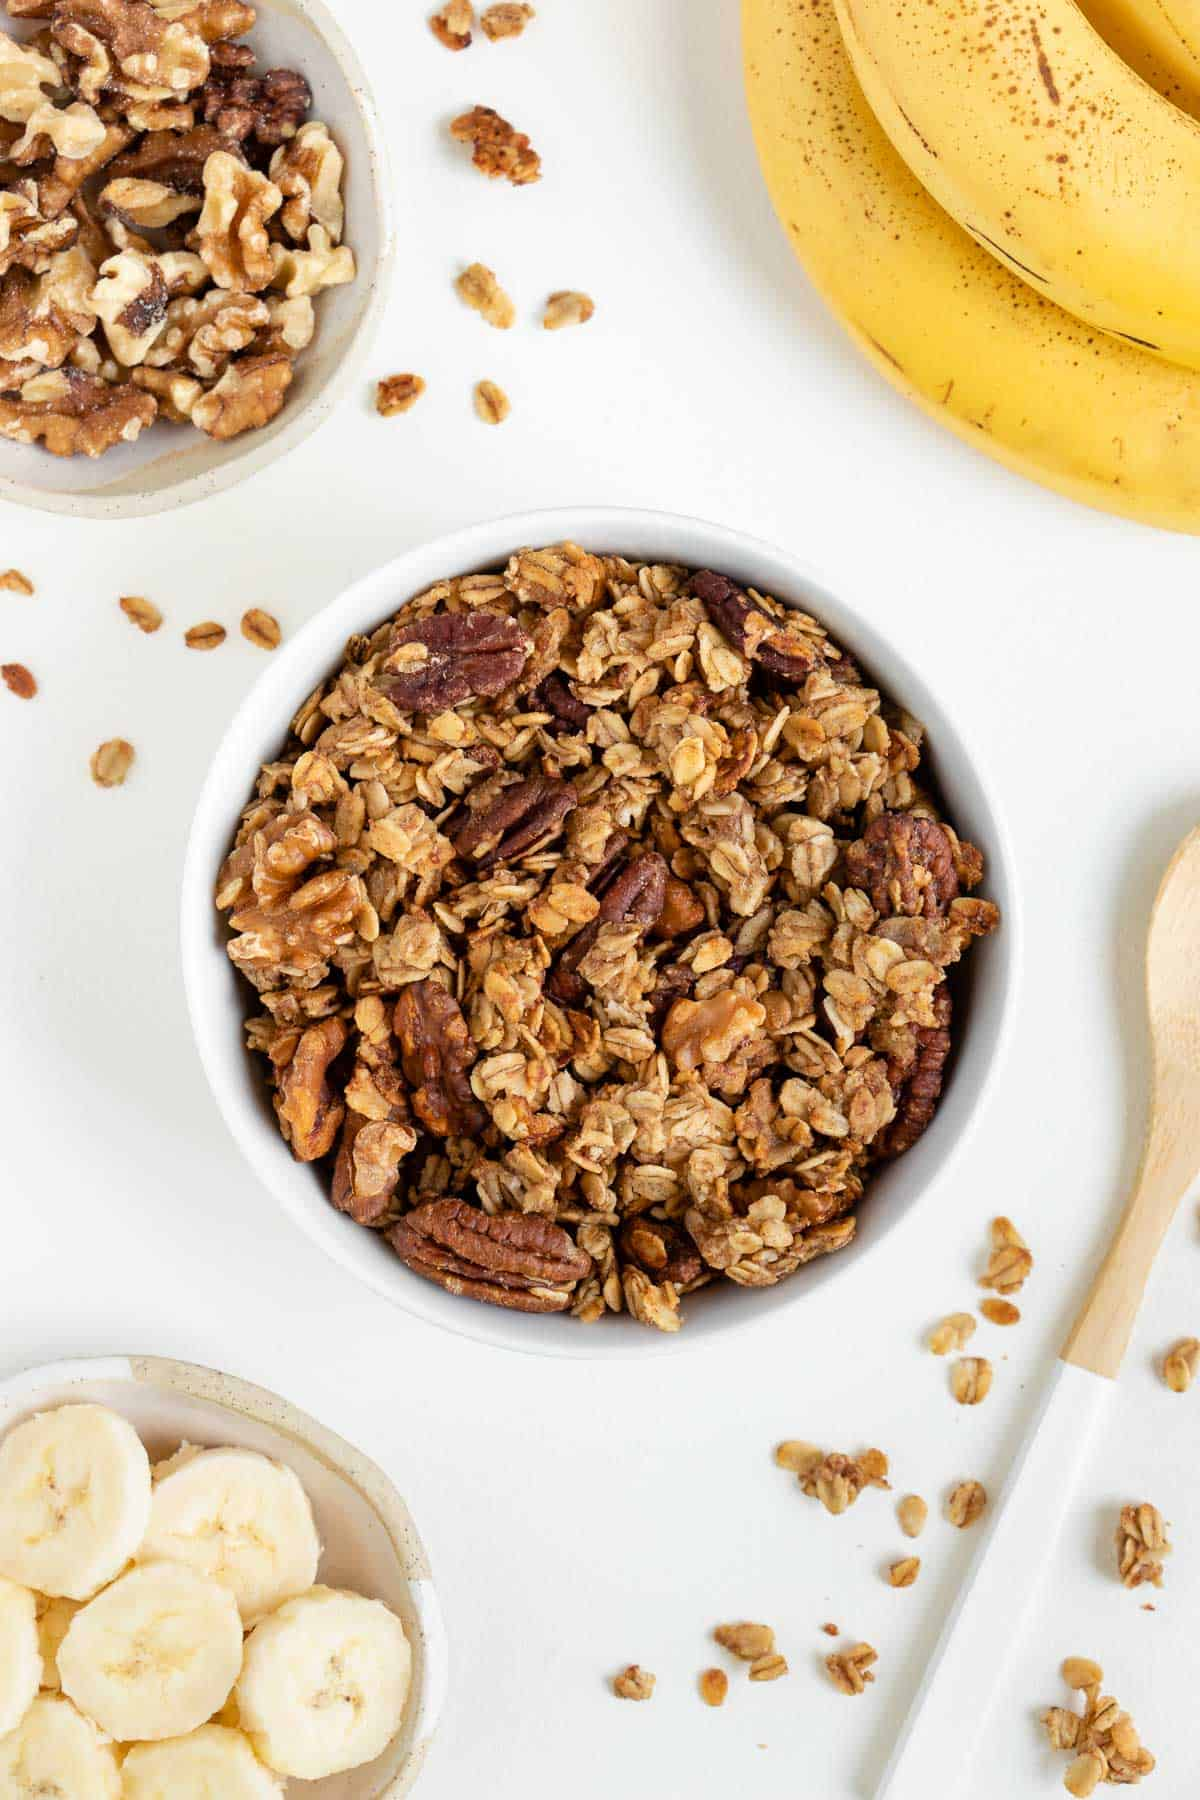 banana bread granola inside a white bowl surrounded by walnuts, sliced banana, and banana peels